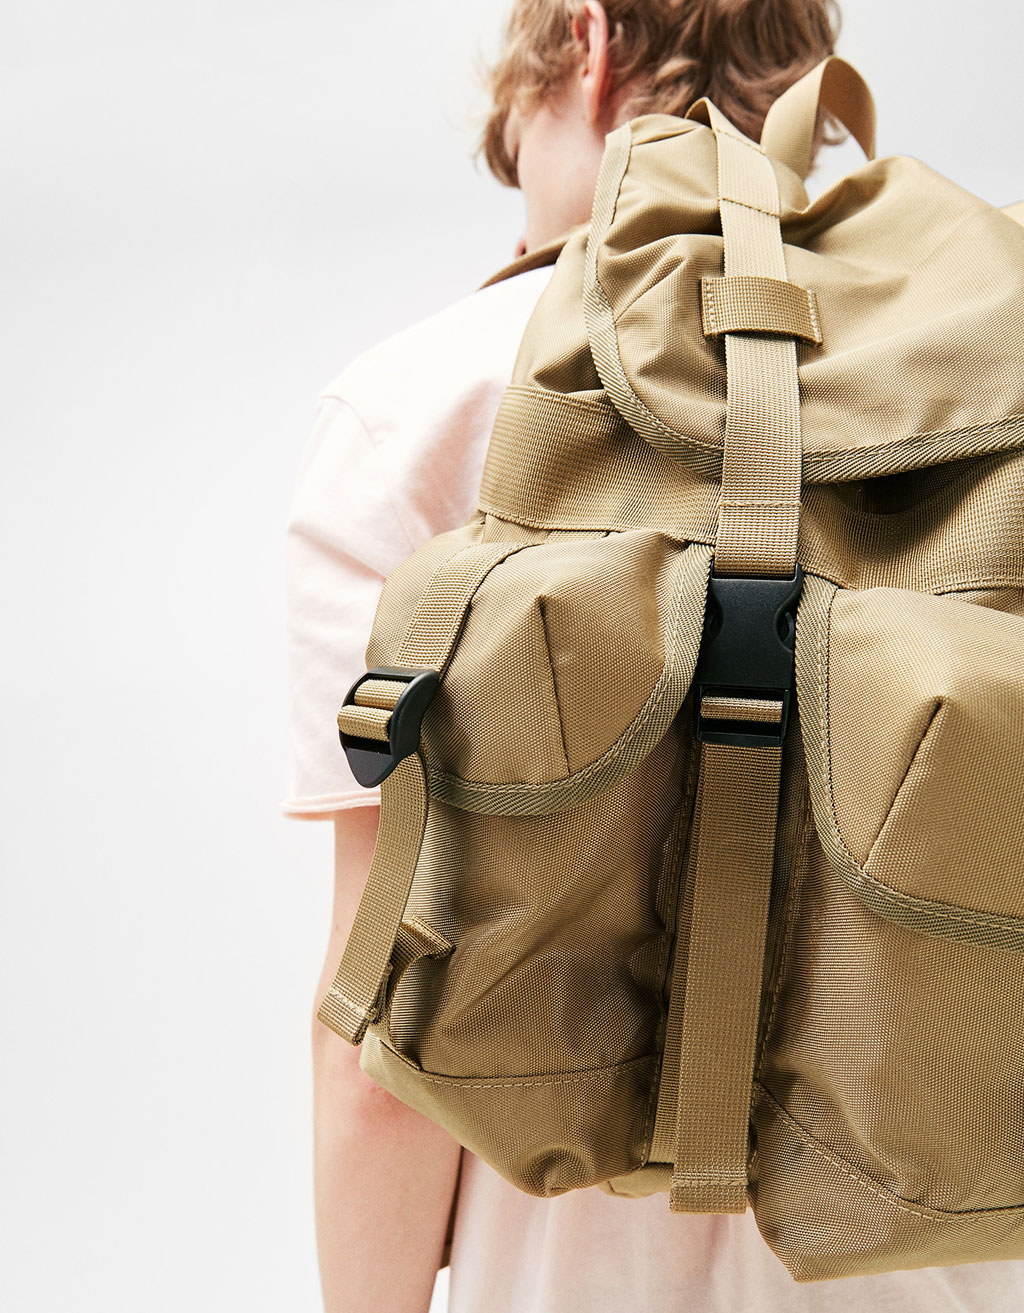 Hiking backpack with pockets